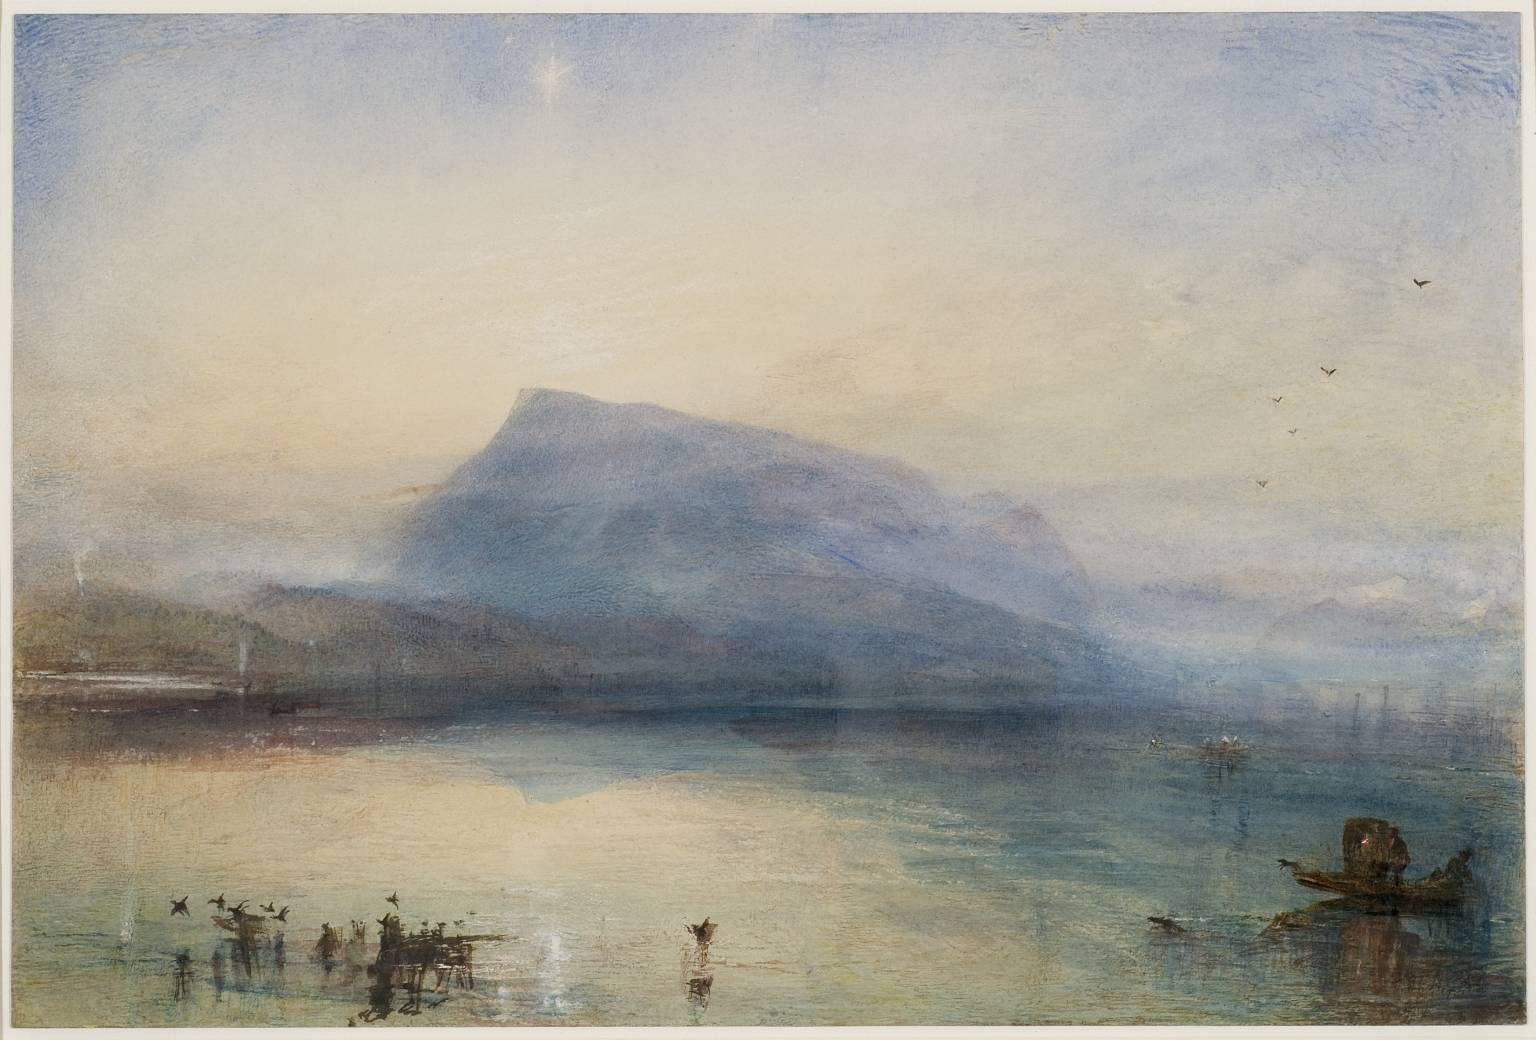 Joseph Mallord William Turner, 'The Blue Rigi, Sunrise' 1842